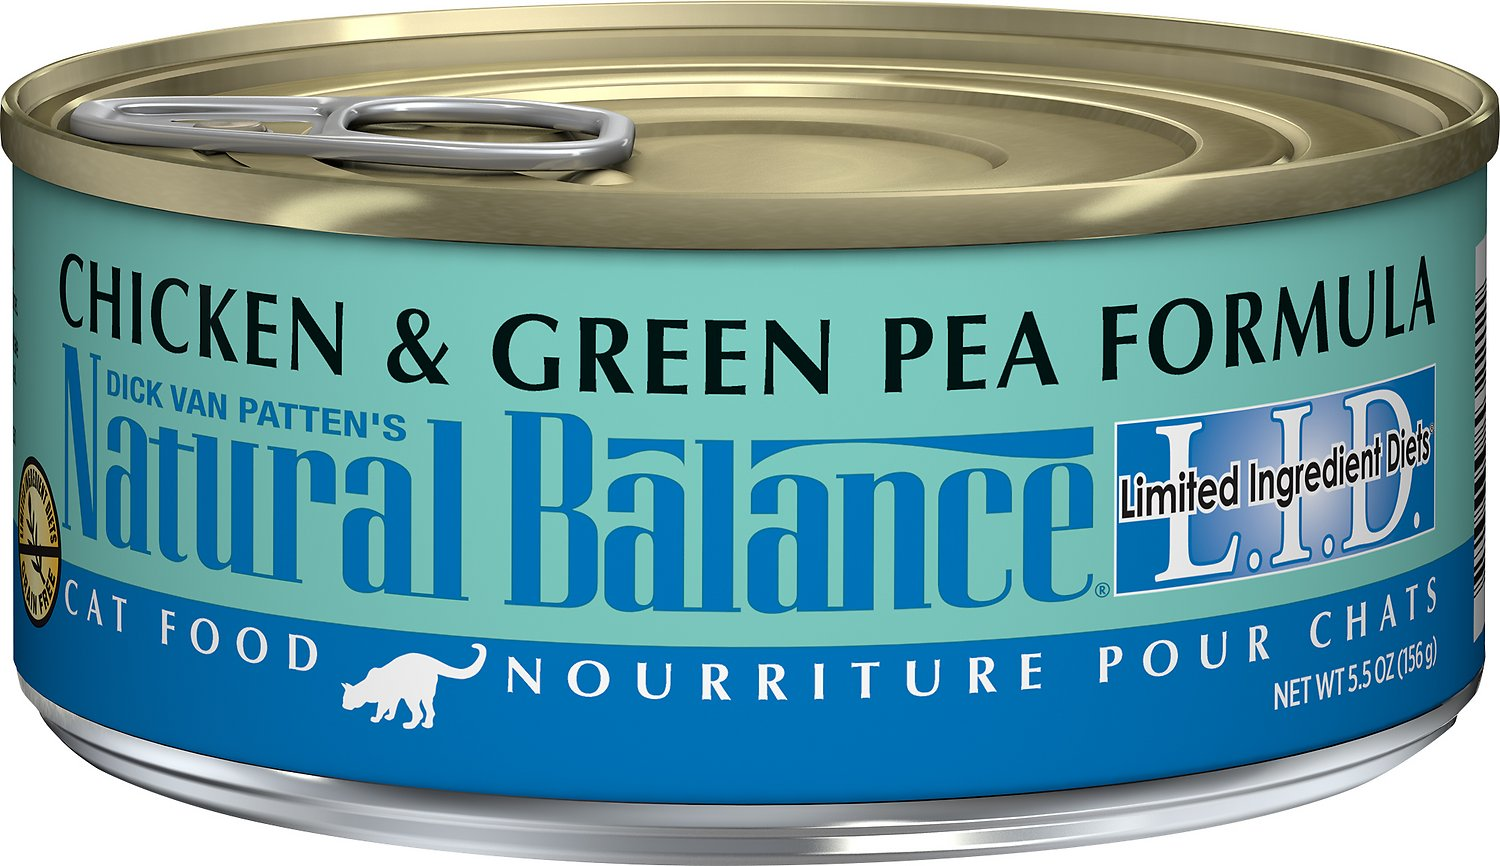 Natural Balance L.I.D. Limited Ingredient Diets Chicken & Green Pea Formula Grain-Free Canned Cat Food, 3-oz